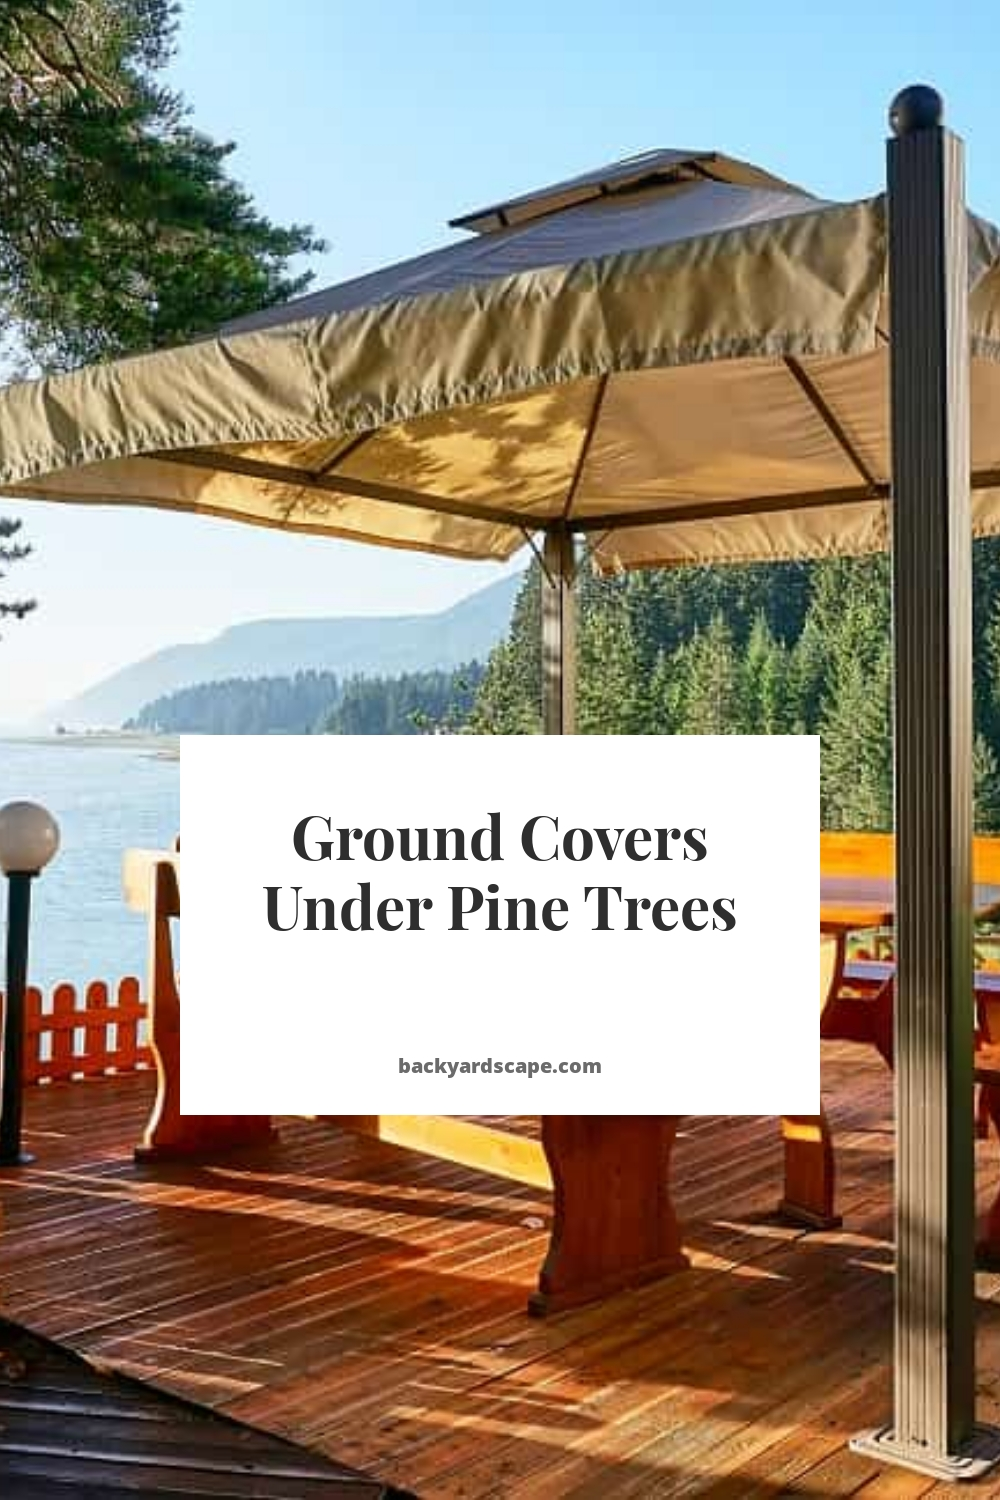 Ground Covers Under Pine Trees